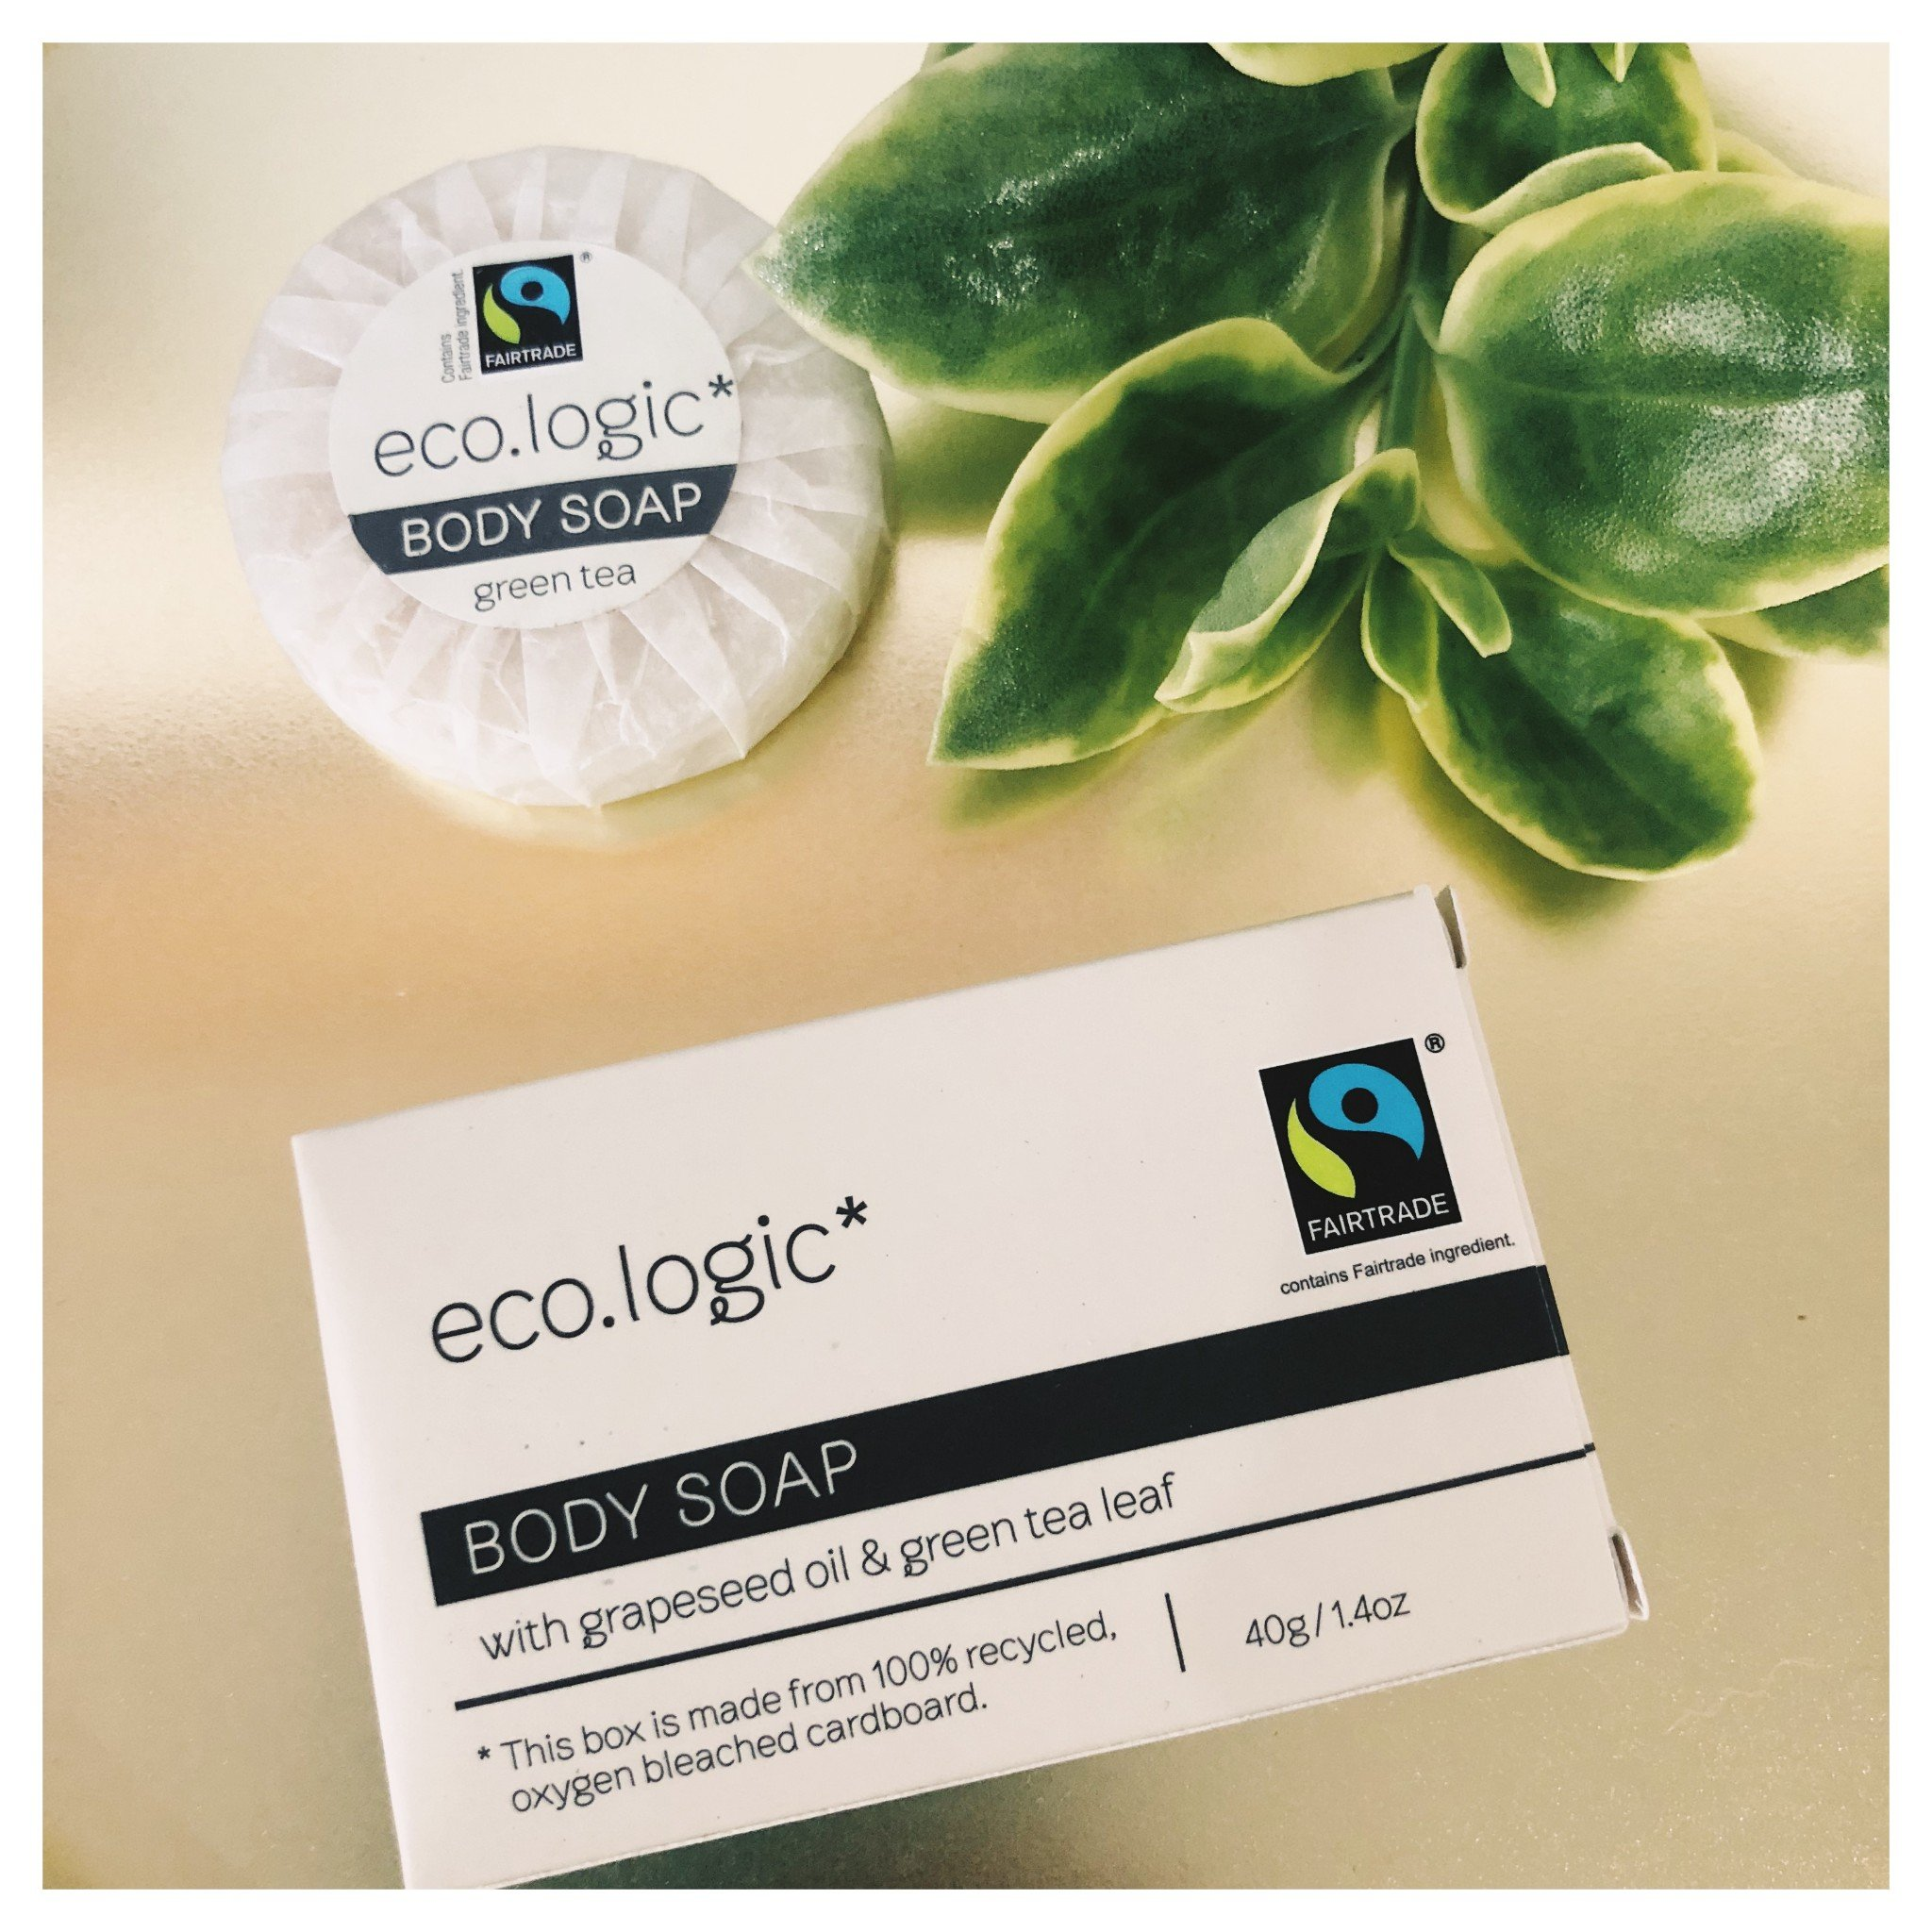 eco.logic Fairtrade Soap 20g